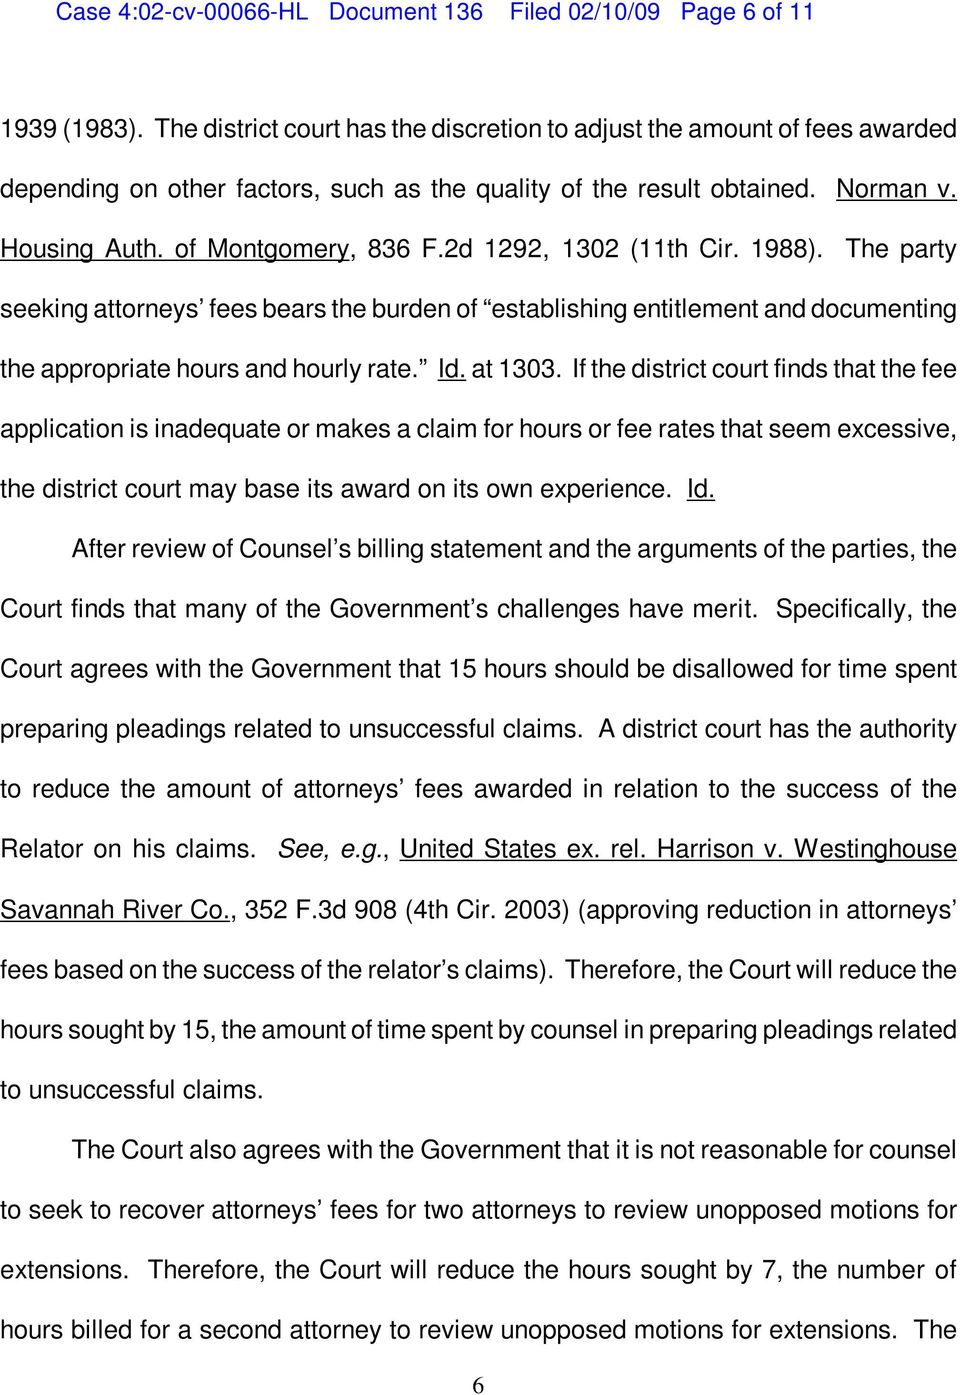 2d 1292, 1302 (11th Cir. 1988). The party seeking attorneys fees bears the burden of establishing entitlement and documenting the appropriate hours and hourly rate. Id. at 1303.